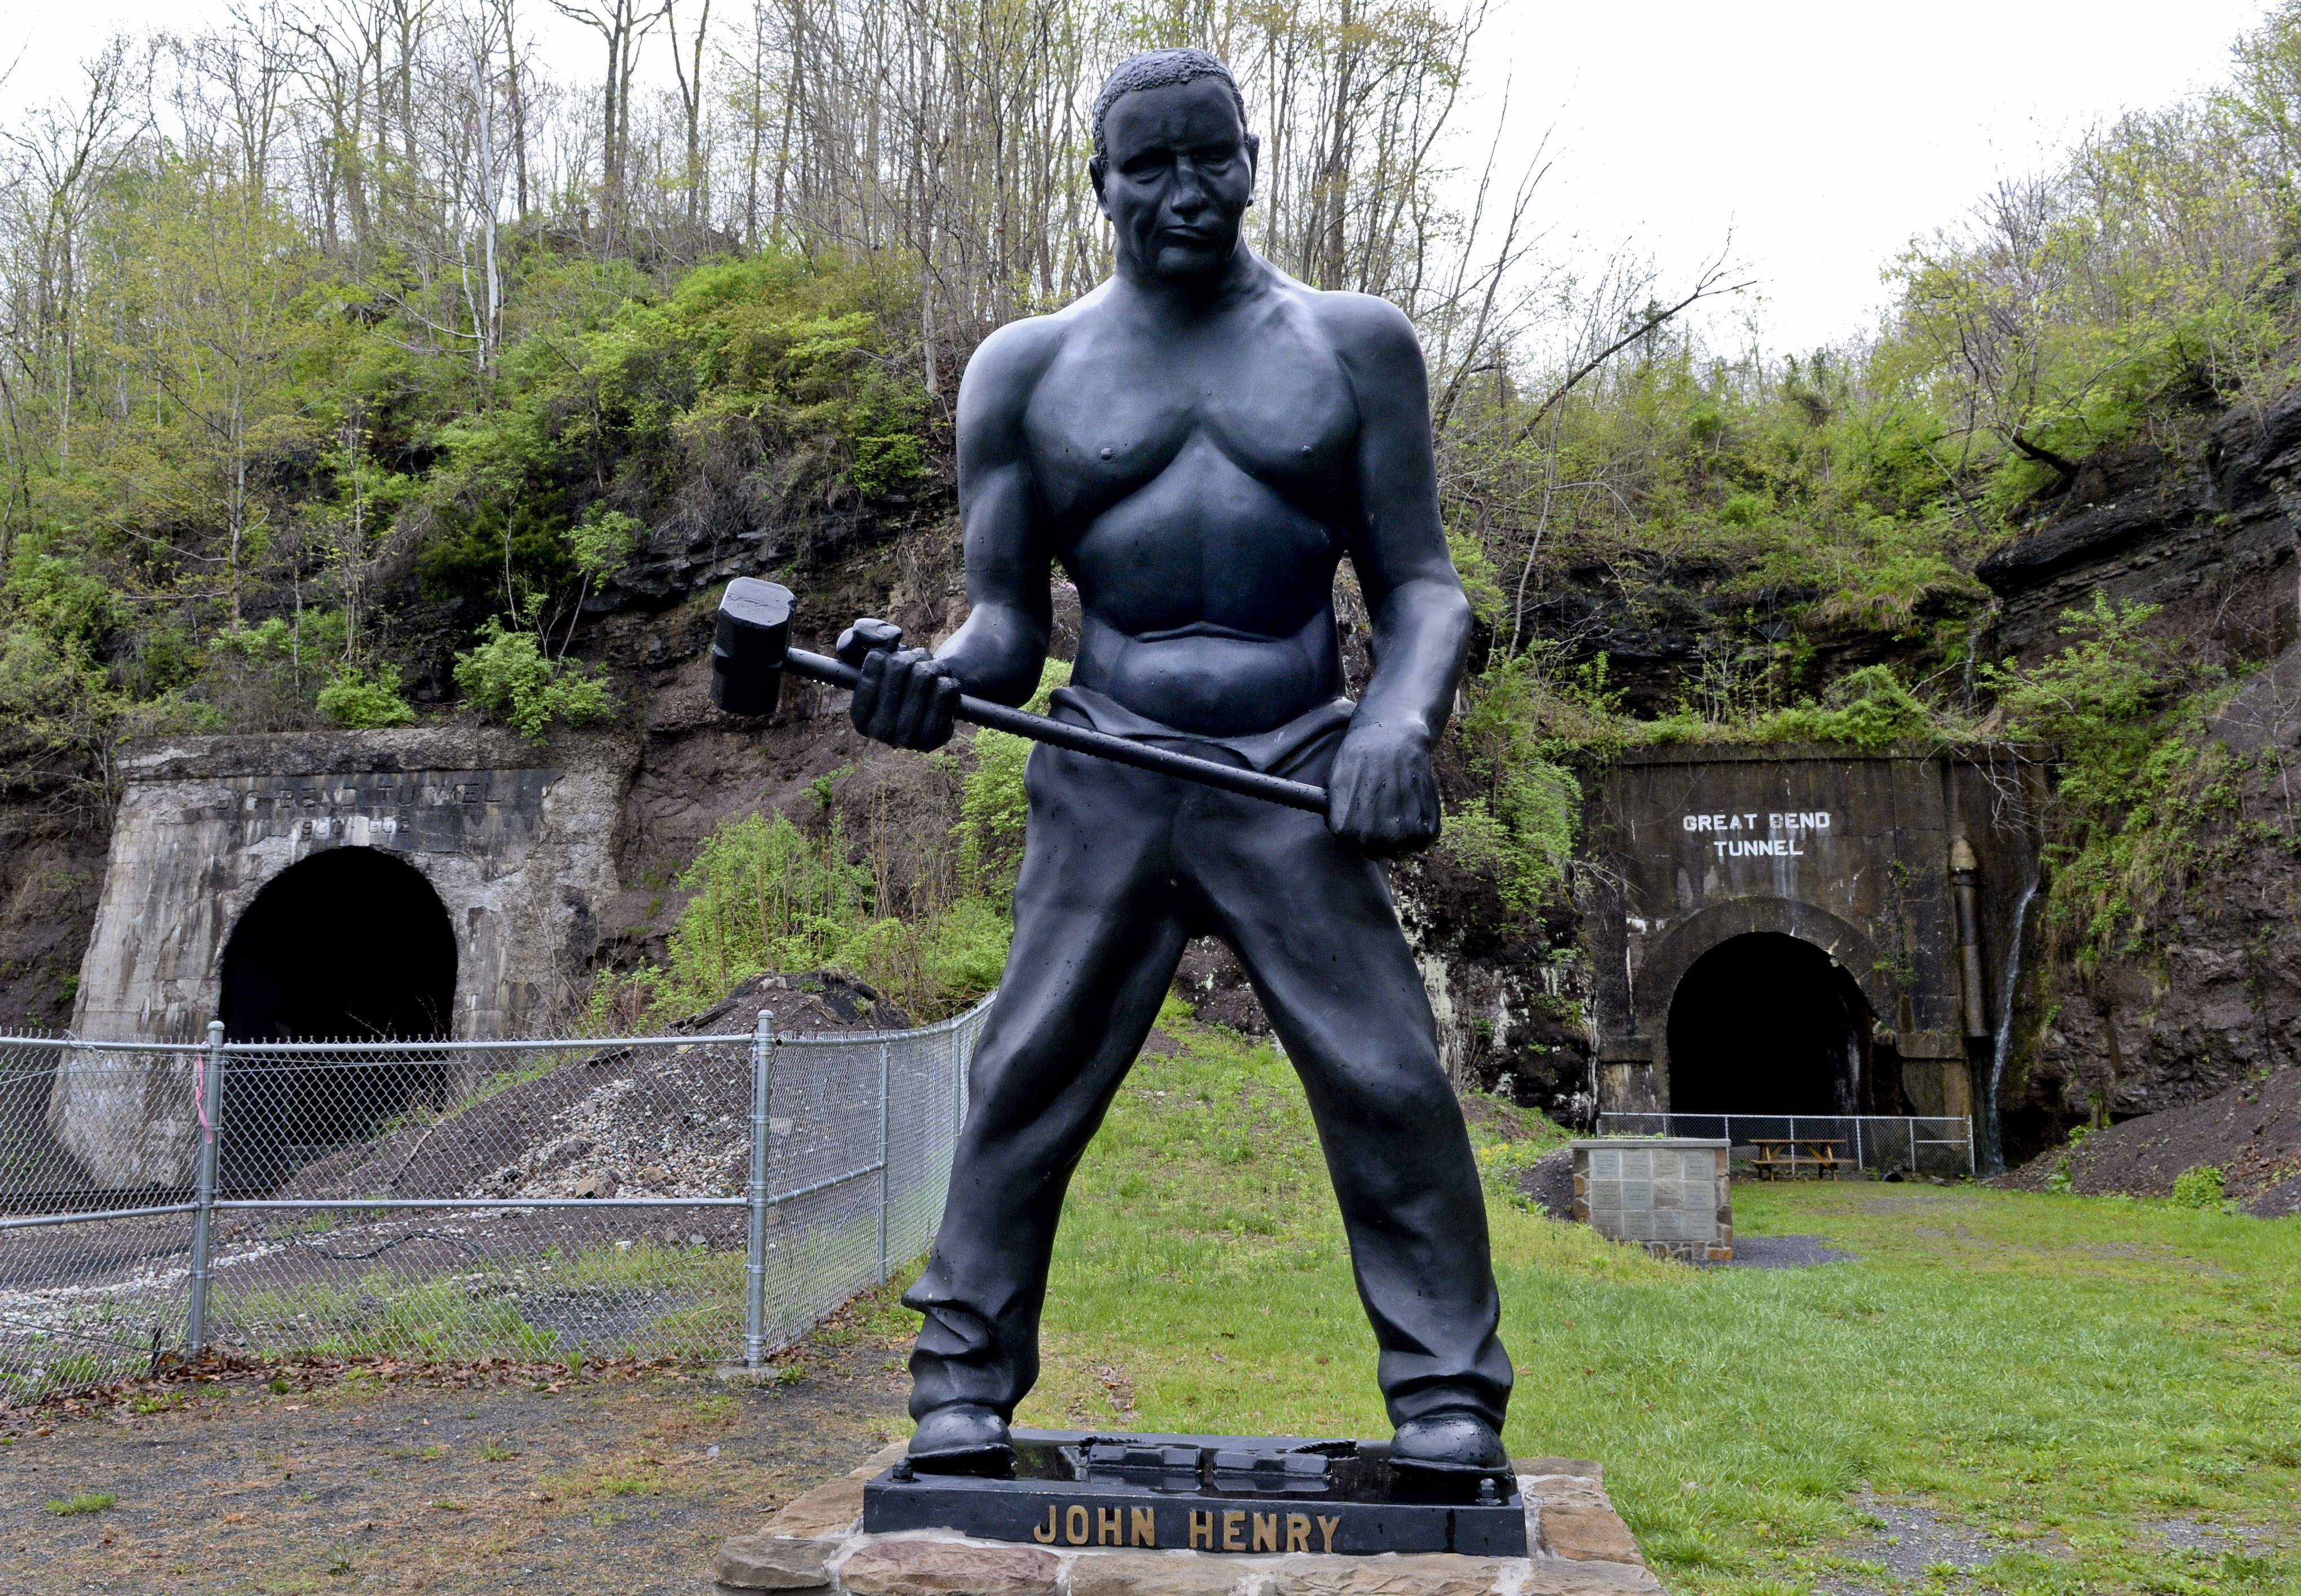 John Henry statue at the Great Bend Tunnel